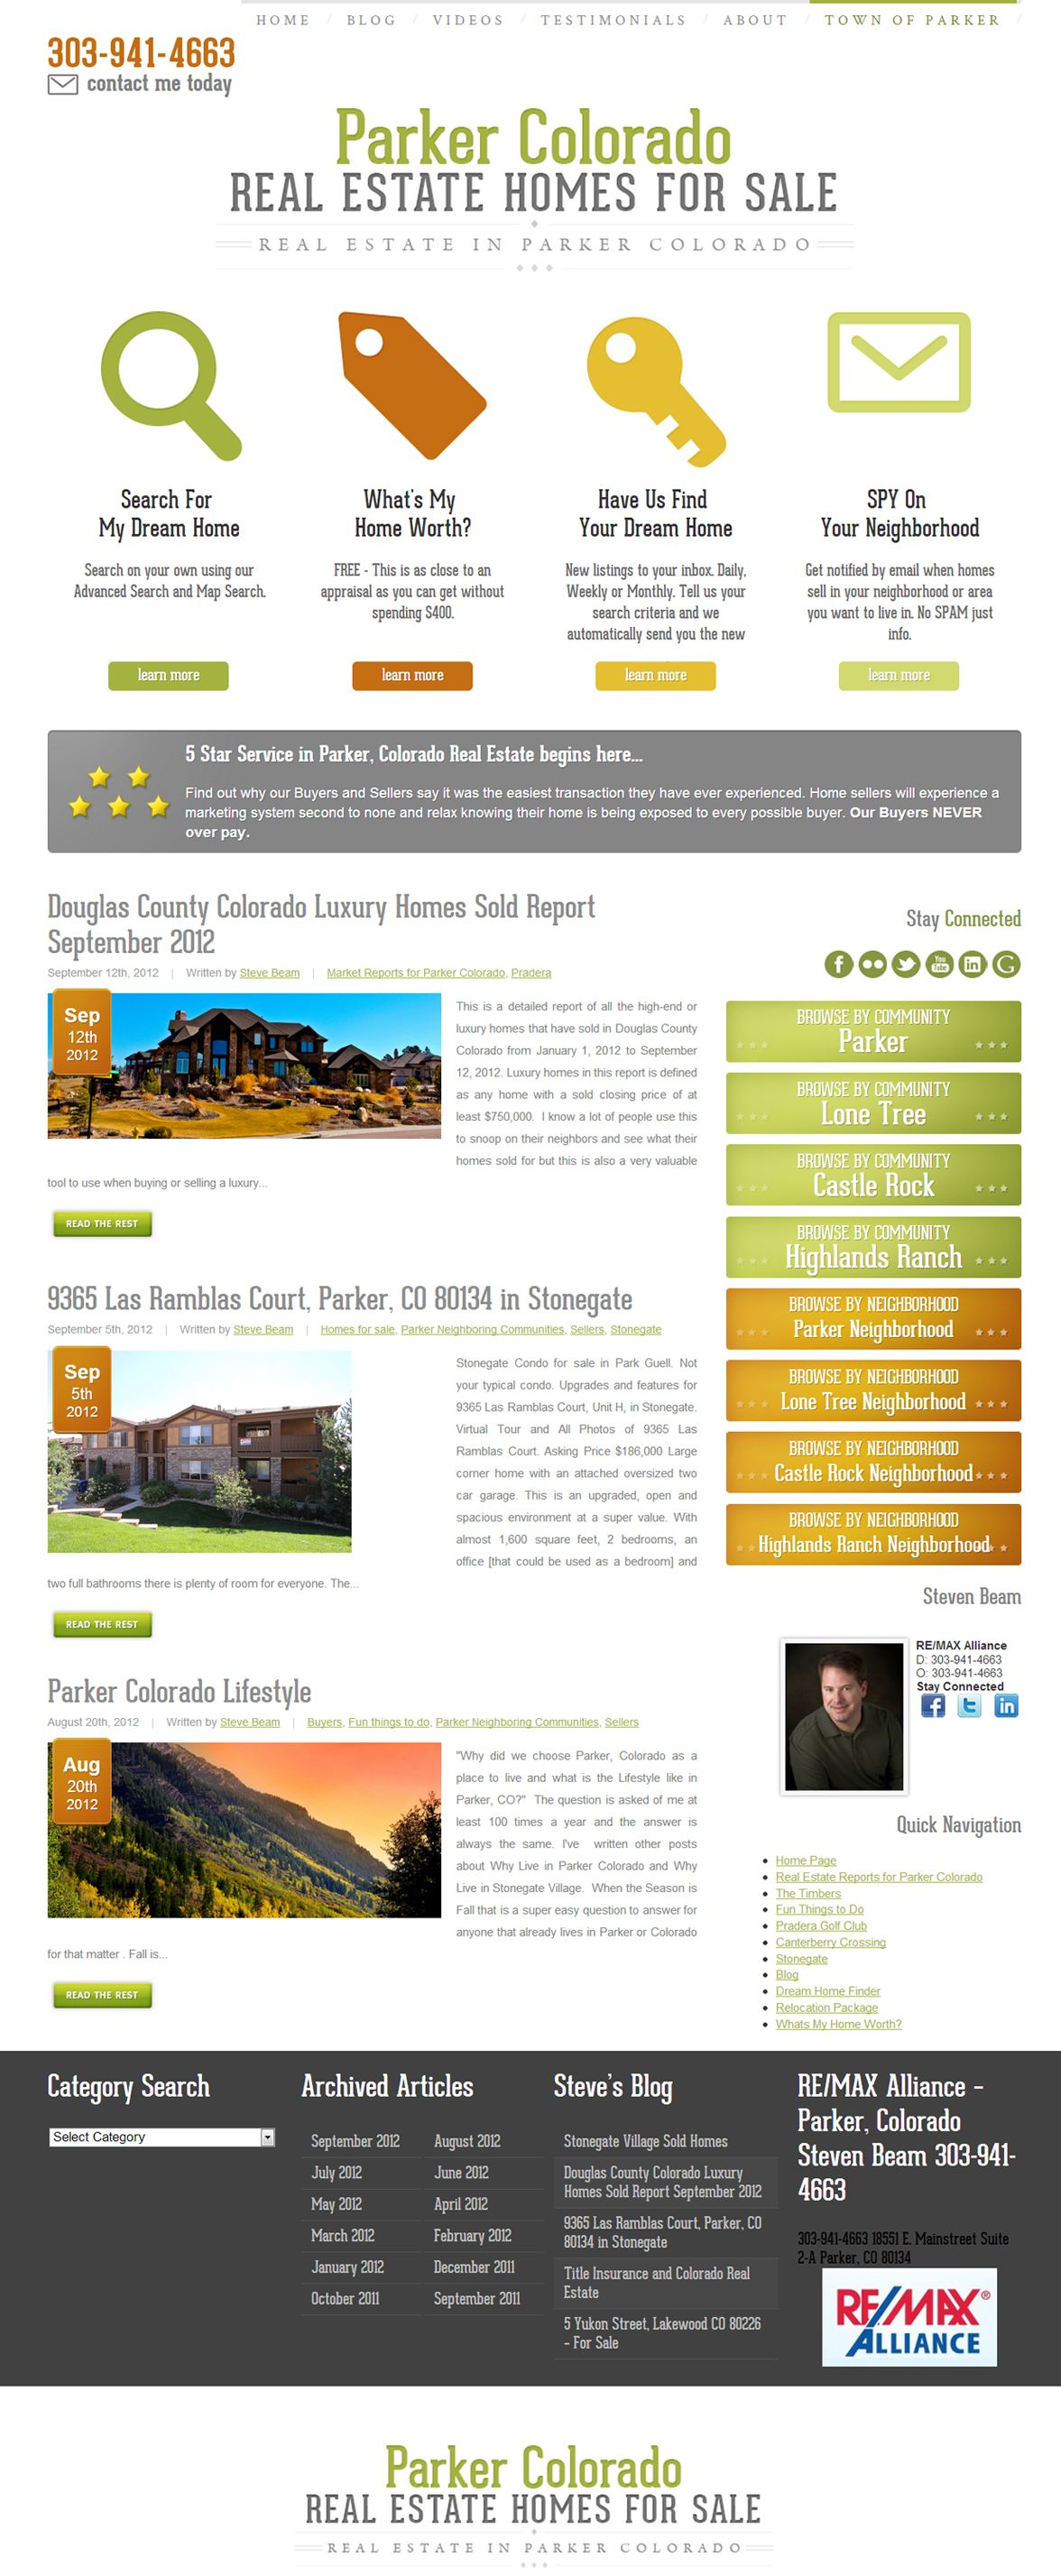 Pakercoloradorealestatehomesforsale if you would like a quote on